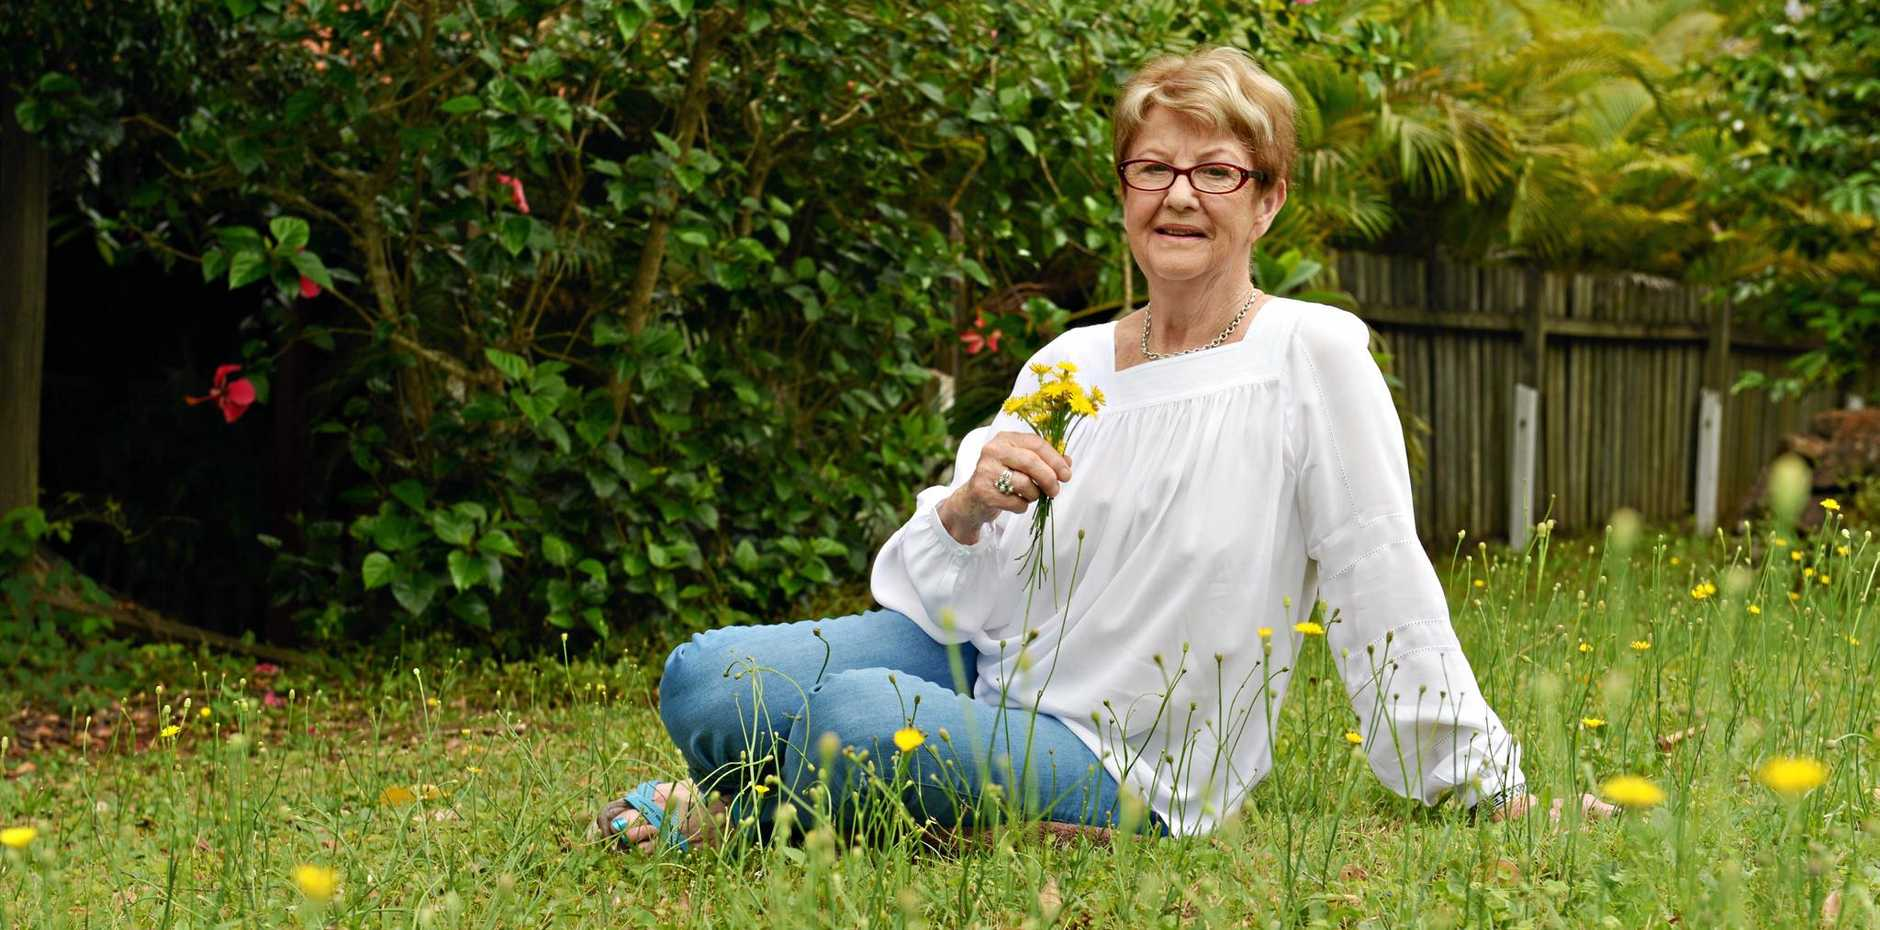 EVERYDAY HERO: Marion Walsham launching her book 'Wishing on a Dandelion' earlier this year.